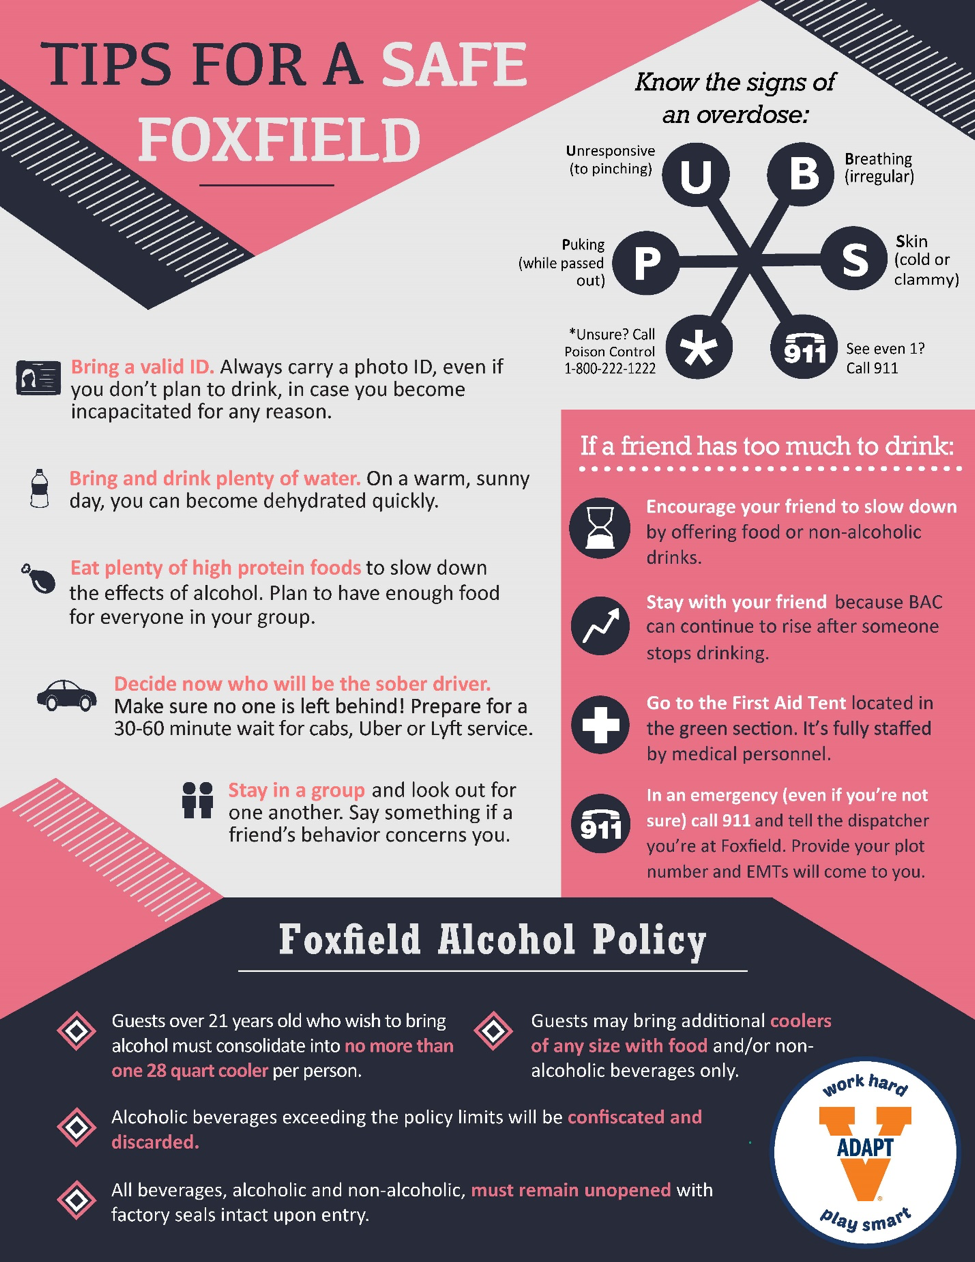 Tips for a Safe Foxfield Infographic. A text-only version is available at www.virginia.edu/adapt/foxfield.